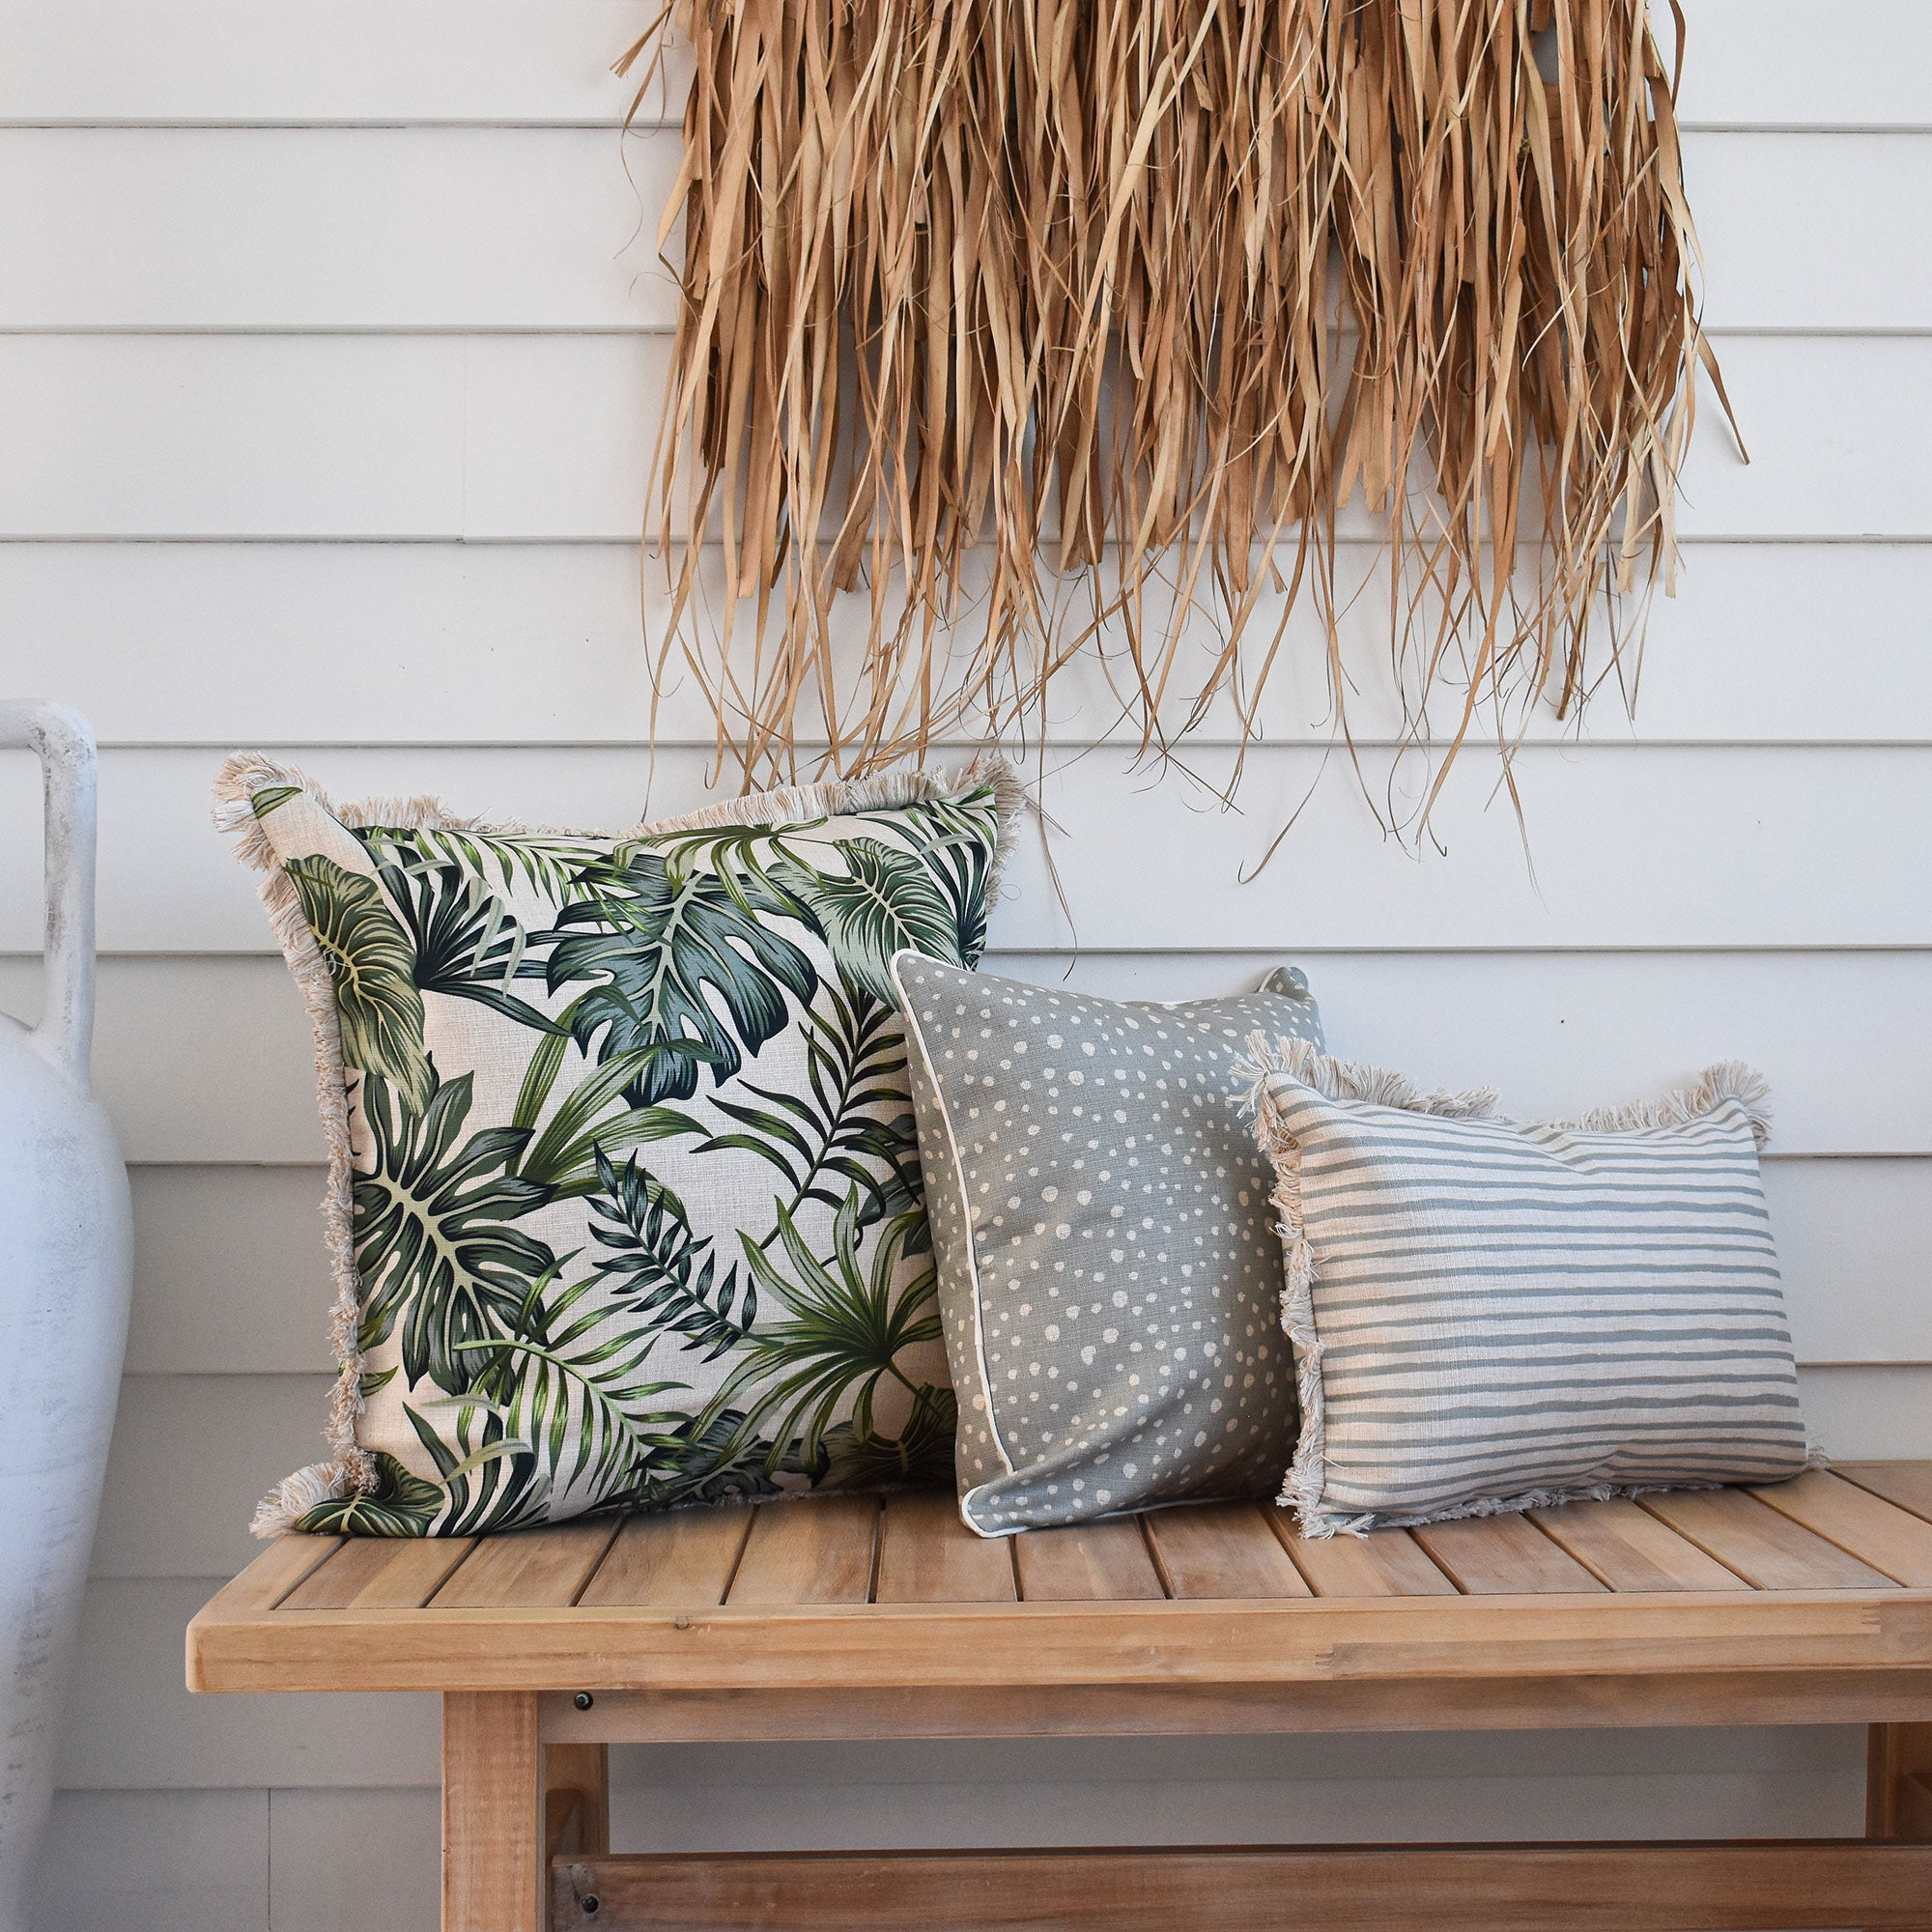 Cushion Cover-Coastal Fringe-Paint Stripes Smoke-35cm x 50cm